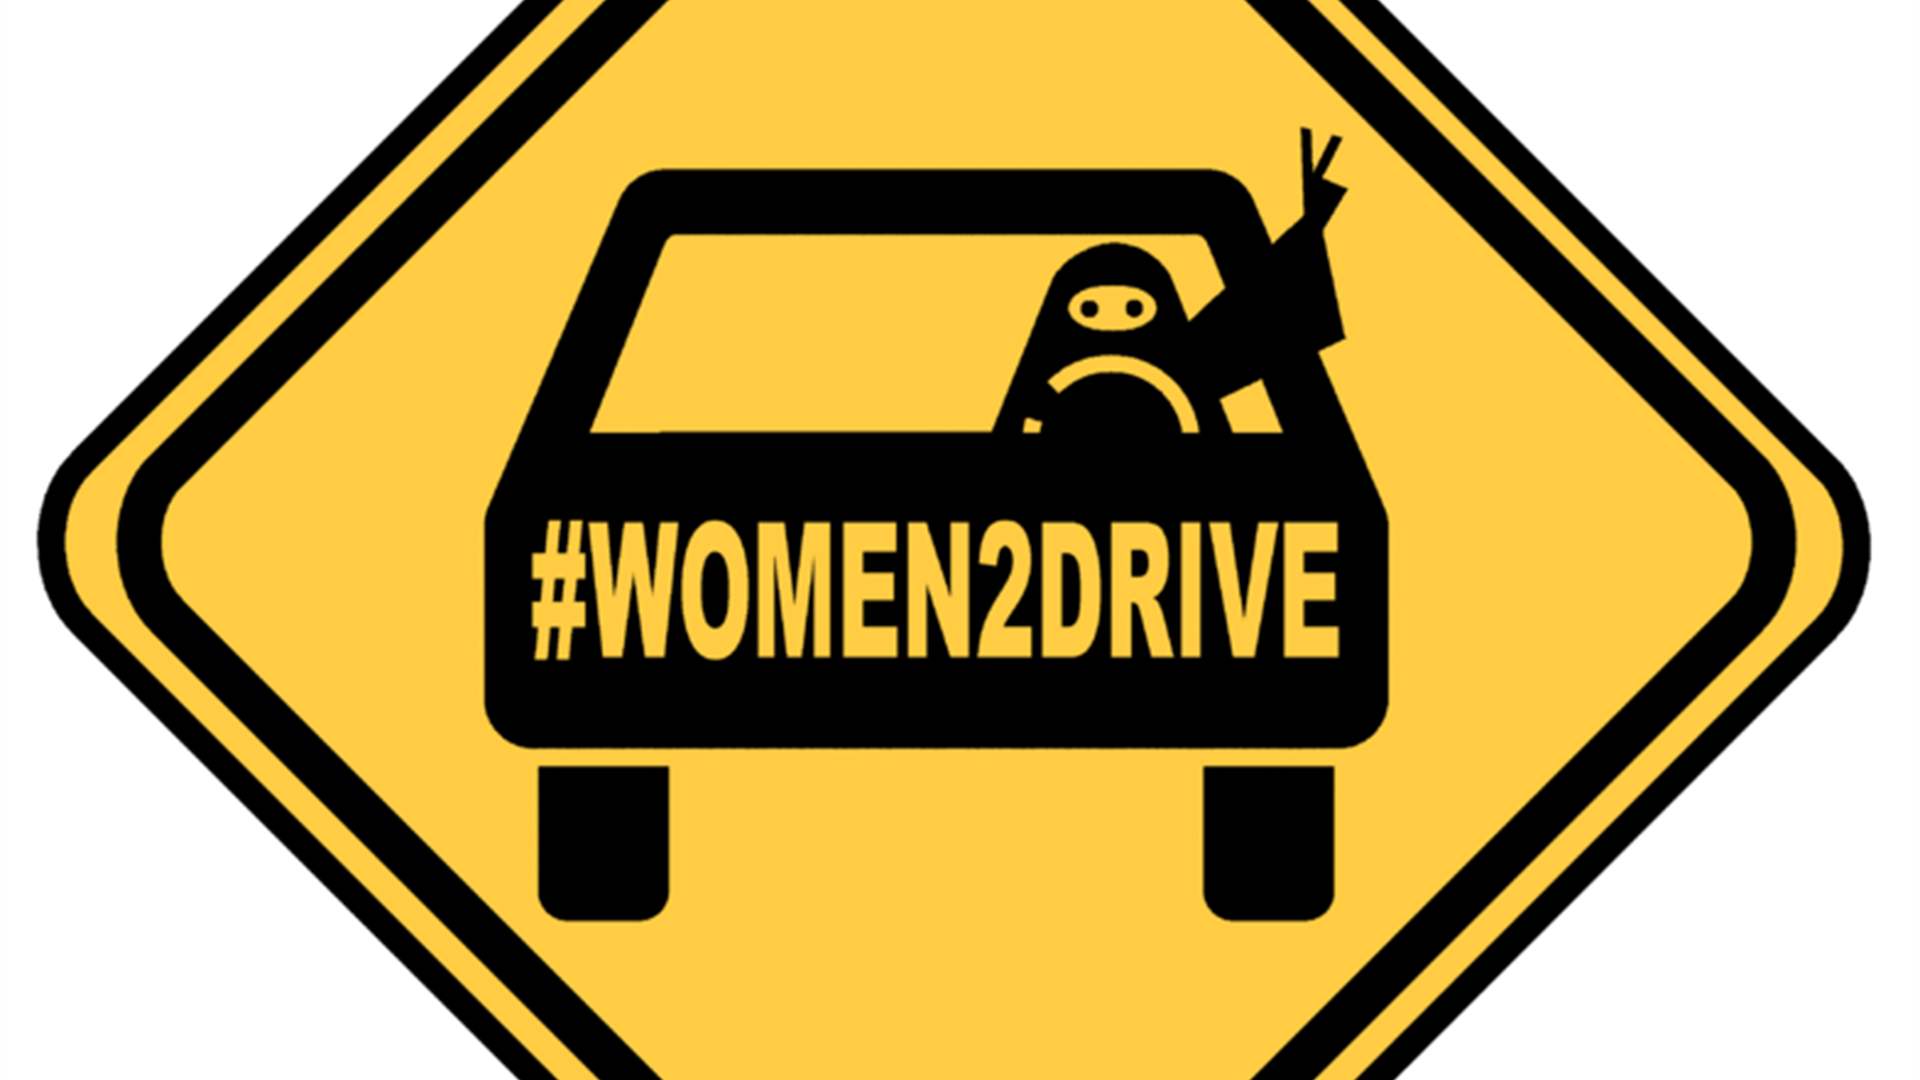 784Px New Saudi Arabia's Traffic Sign (Women2drive)